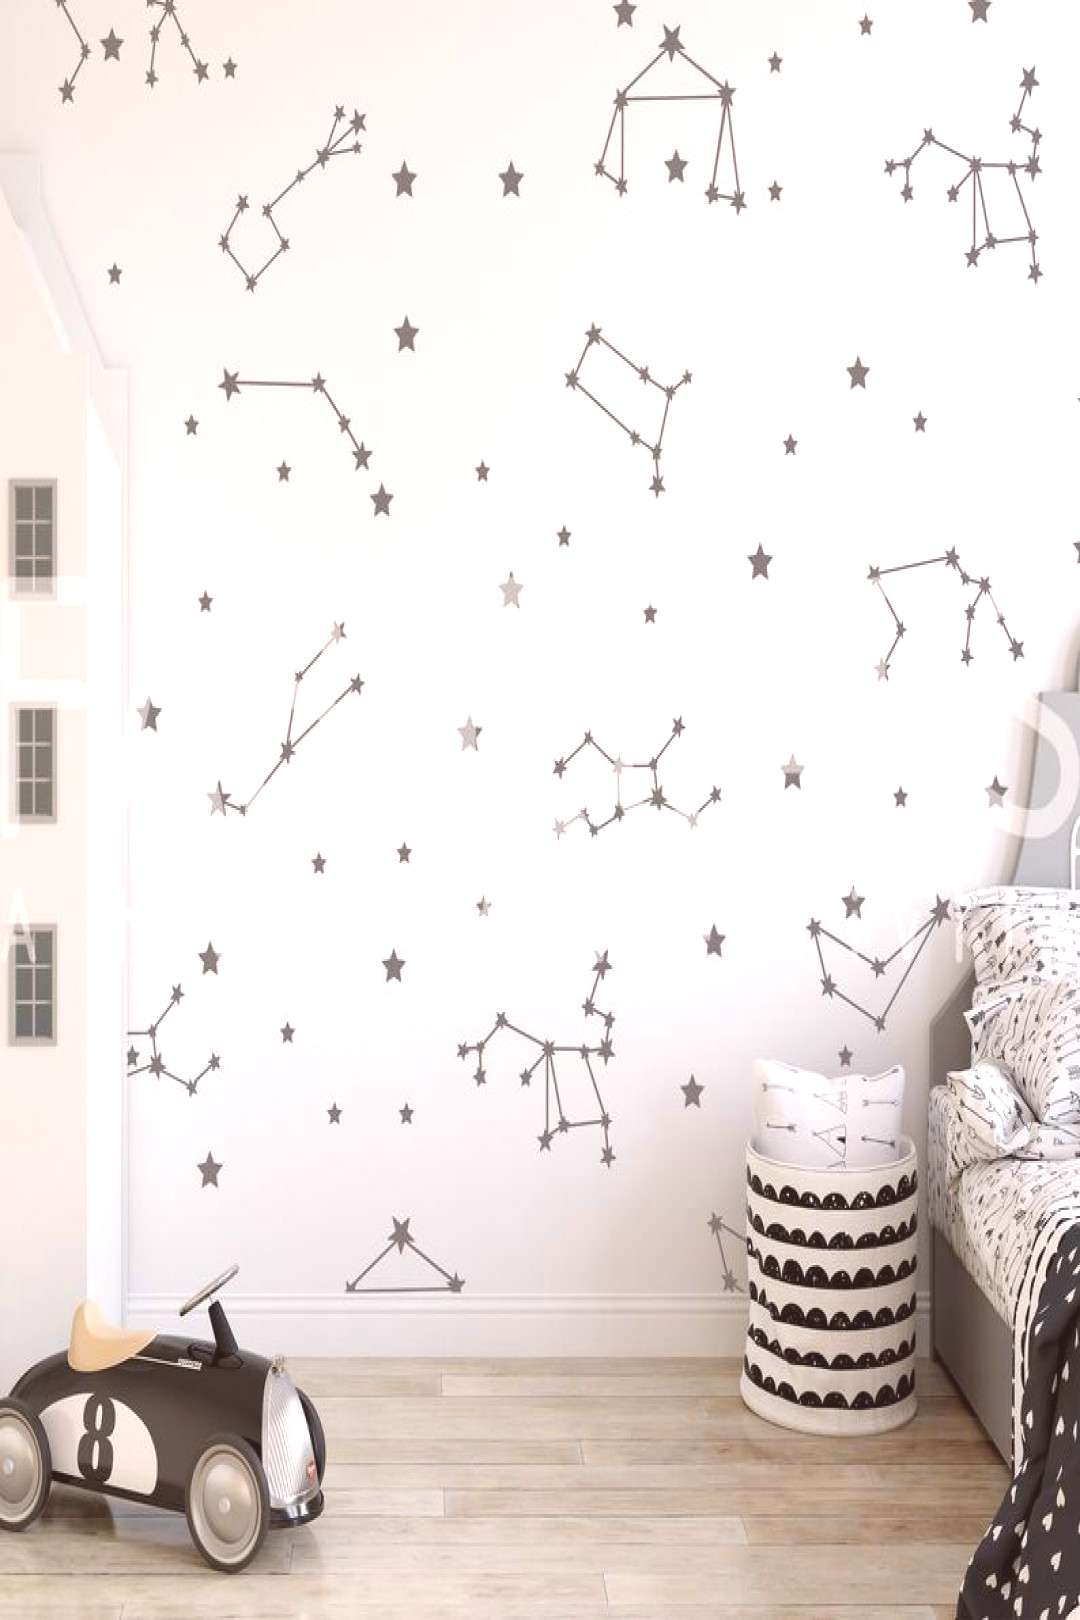 Constellations Map Wall Decal#constellations